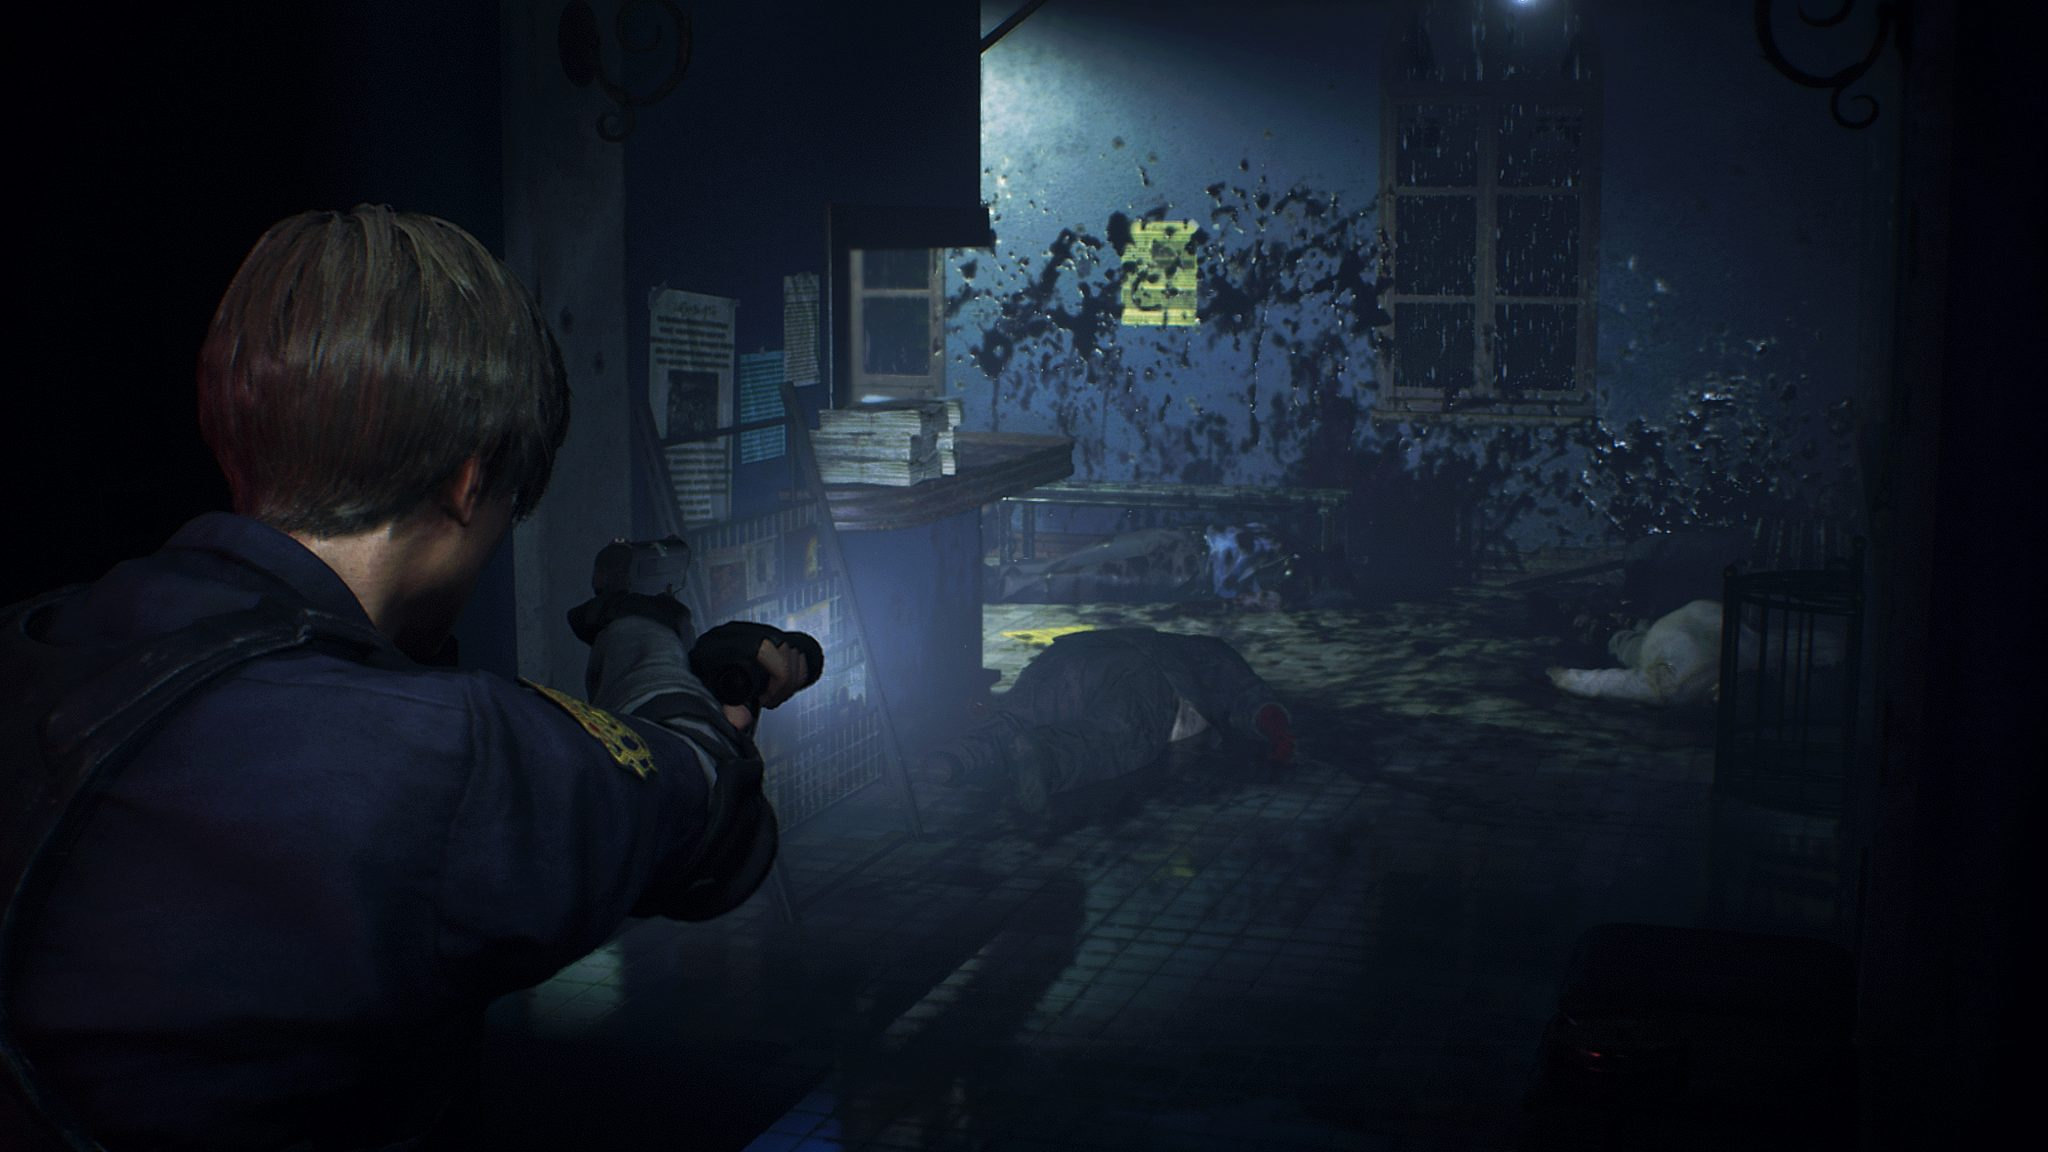 The Cars 2 Wallpaper Resident Evil 2 Remake Official 4k Screenshots Give A New